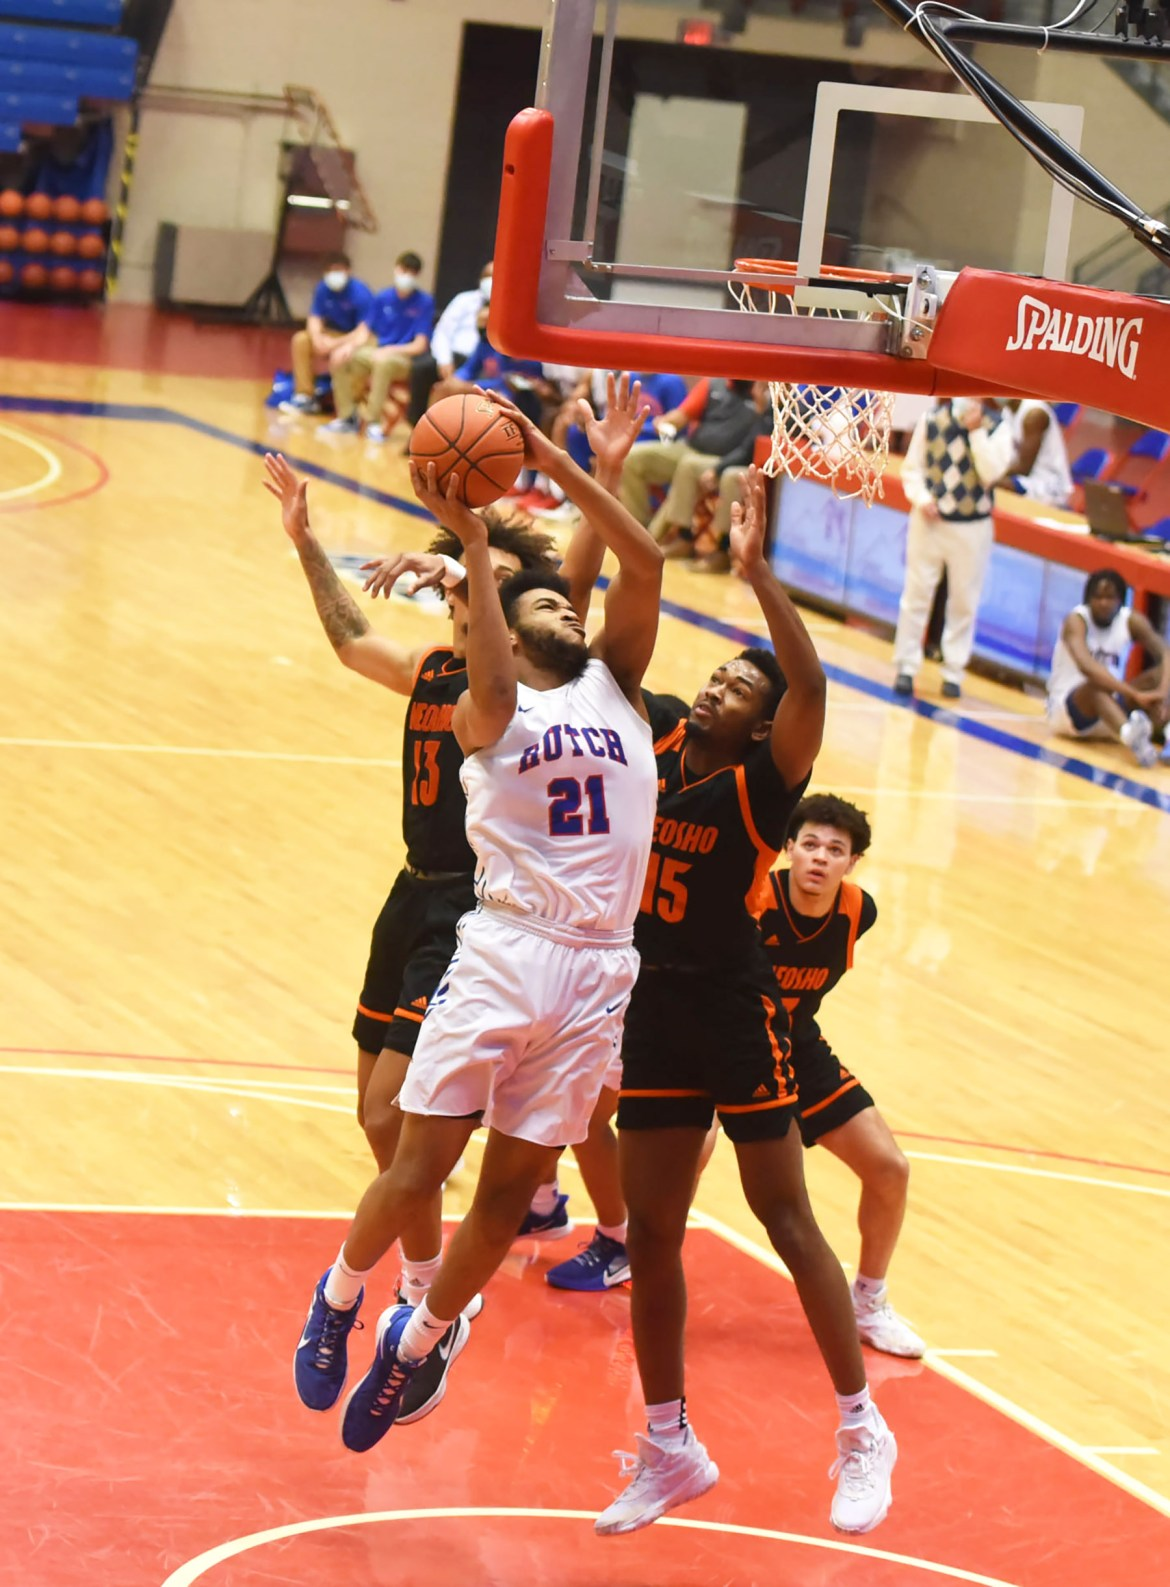 Mayers playing at a high level for Blue Dragons